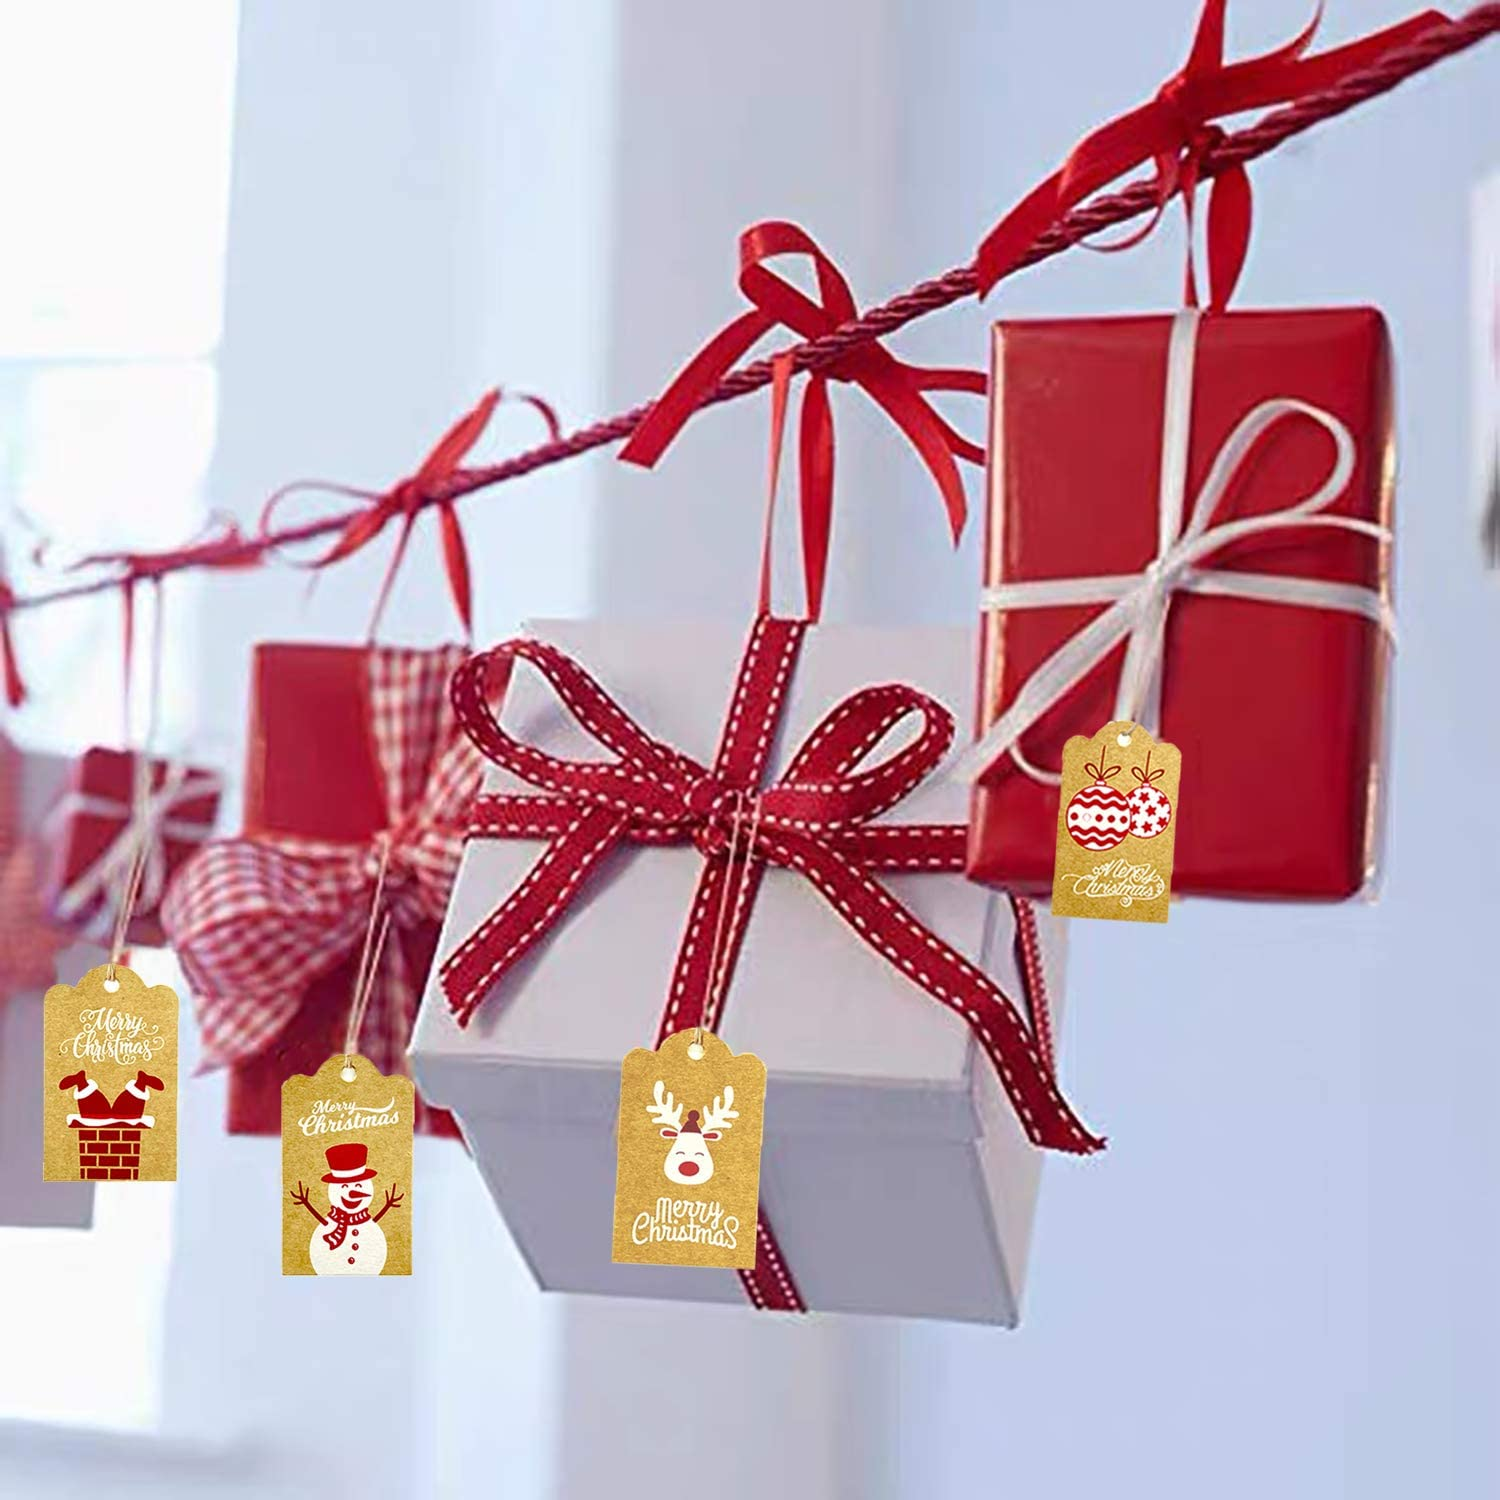 Christmas Gift Tags Xmas Gift Tag Kit 120 Pcs Xmas Kraft Paper Tags with 10M Cotton String and 10M Natural Jute String,for DIY Xmas Present Wrapping Paper and Xmas Tree Decoration